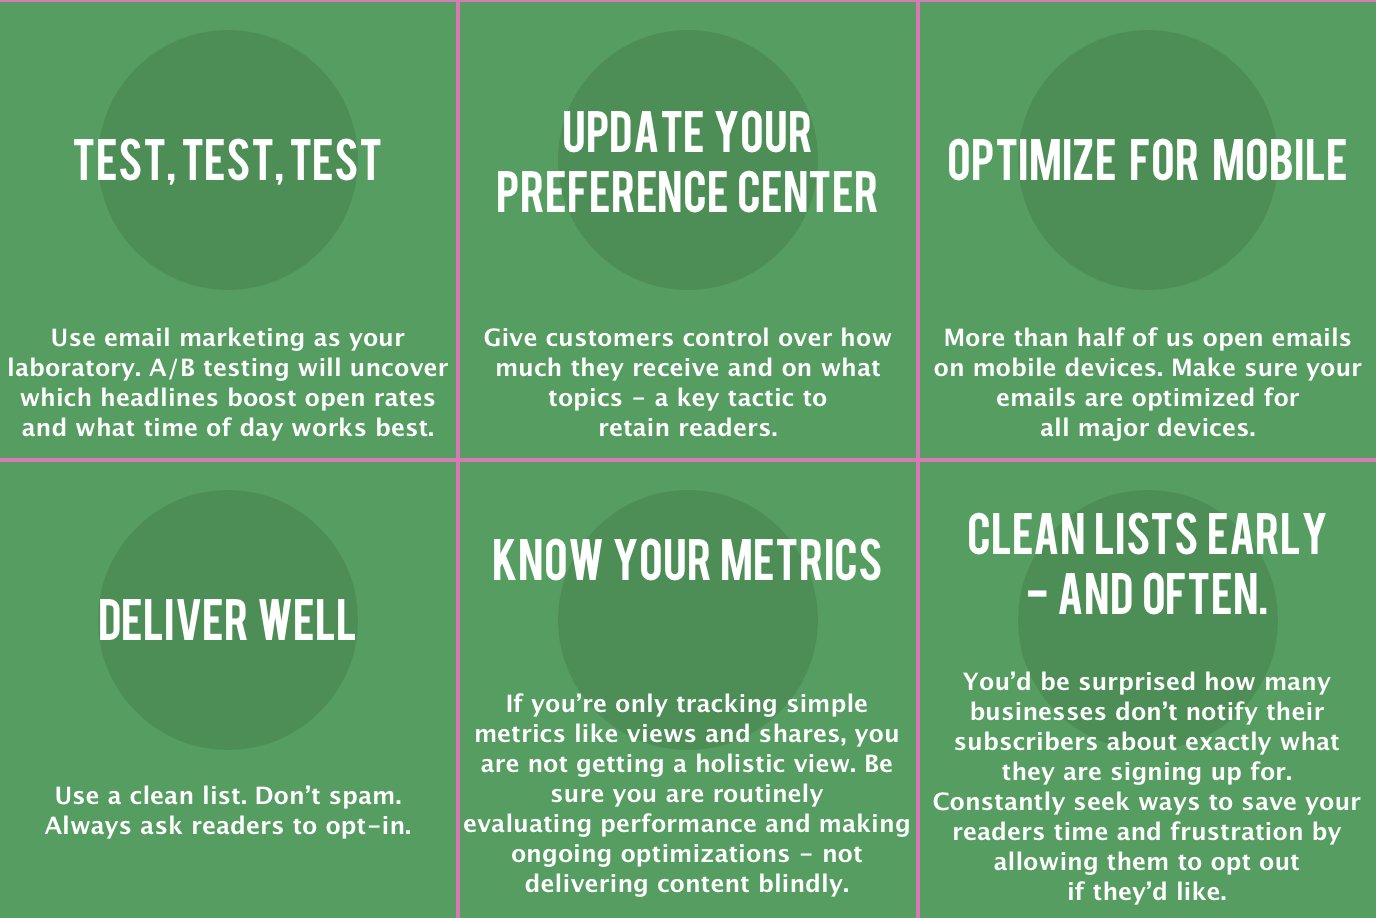 Rules for email lists: always test, update your preferences, optimize for mobile, use a clean list, know your metrics